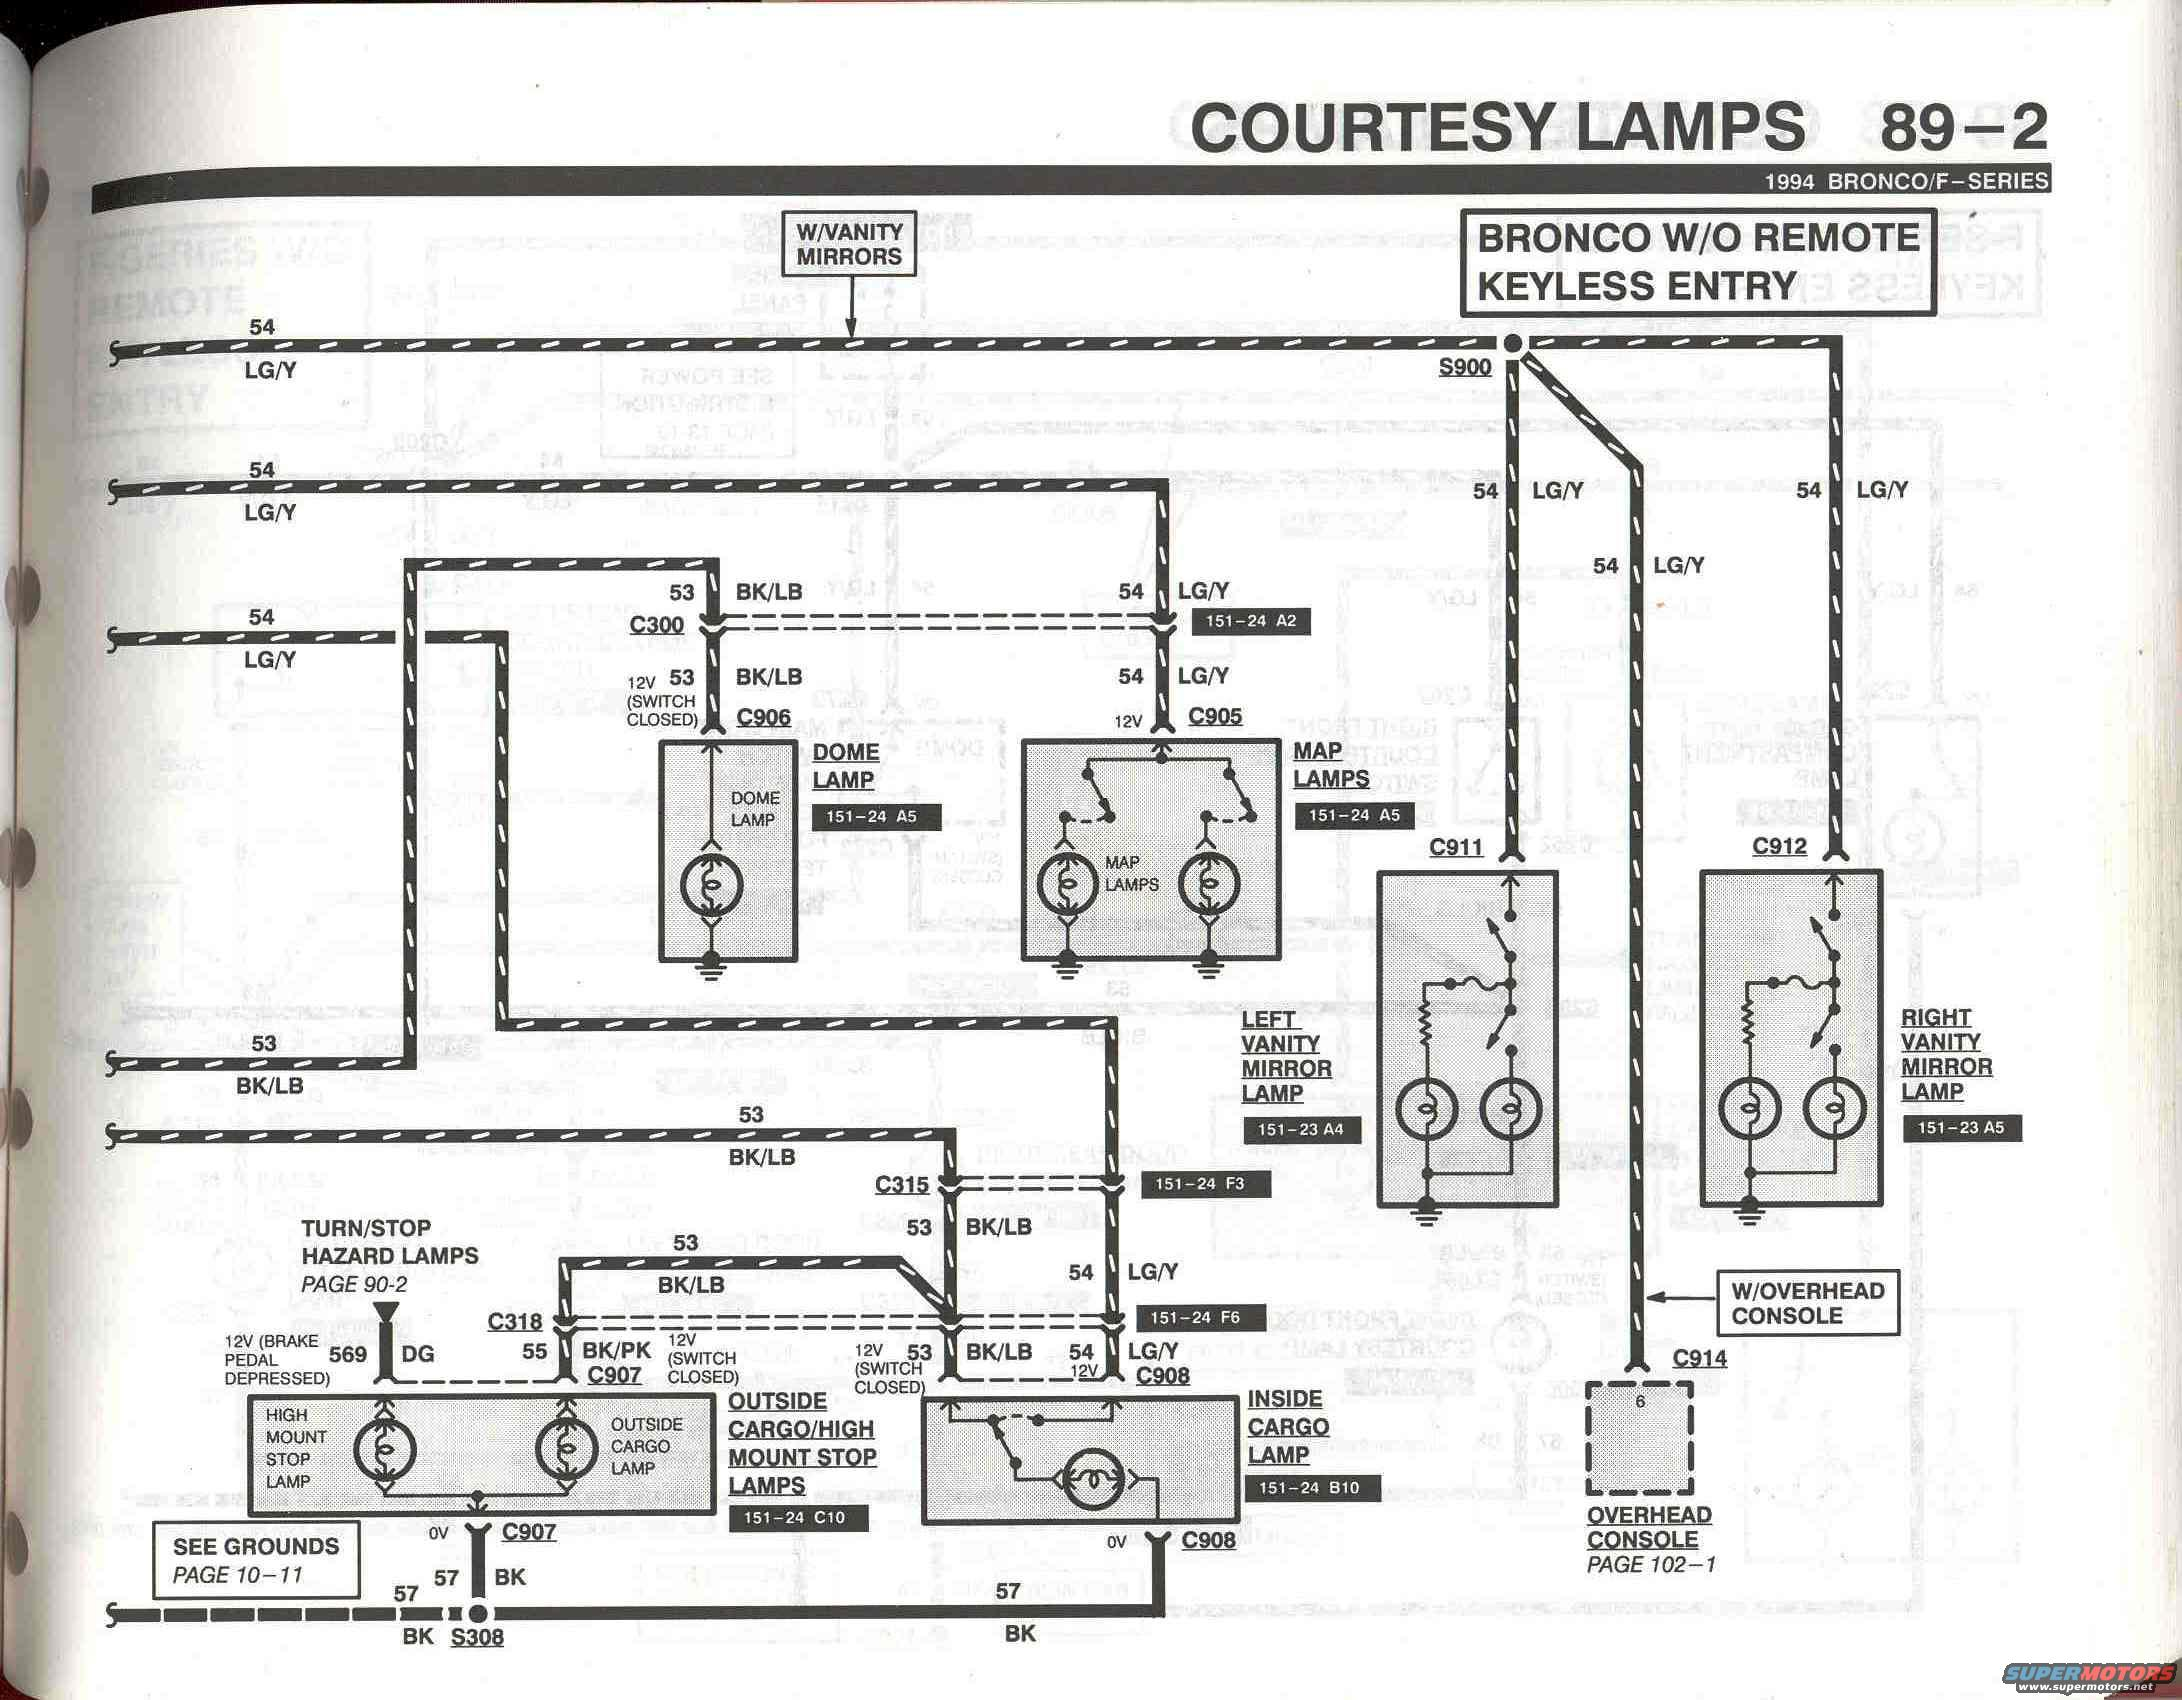 dome light wiring | Bronco Forum - Full Size Ford Bronco ForumFull Size Bronco Forum